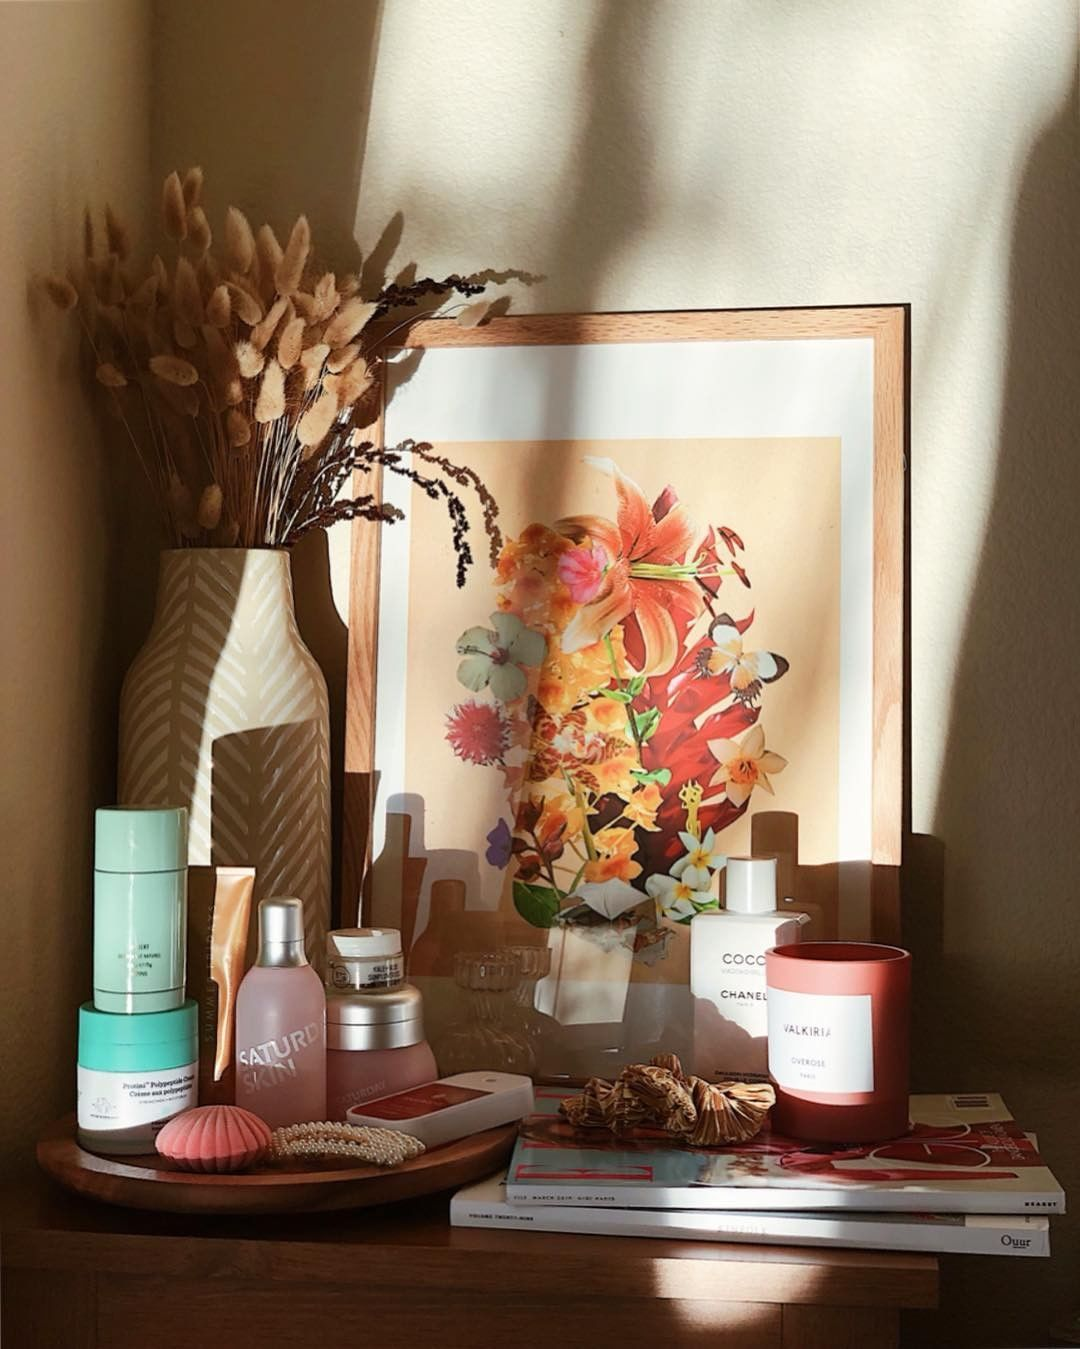 We spy our #DailyDew Hydrating Essence Mist and